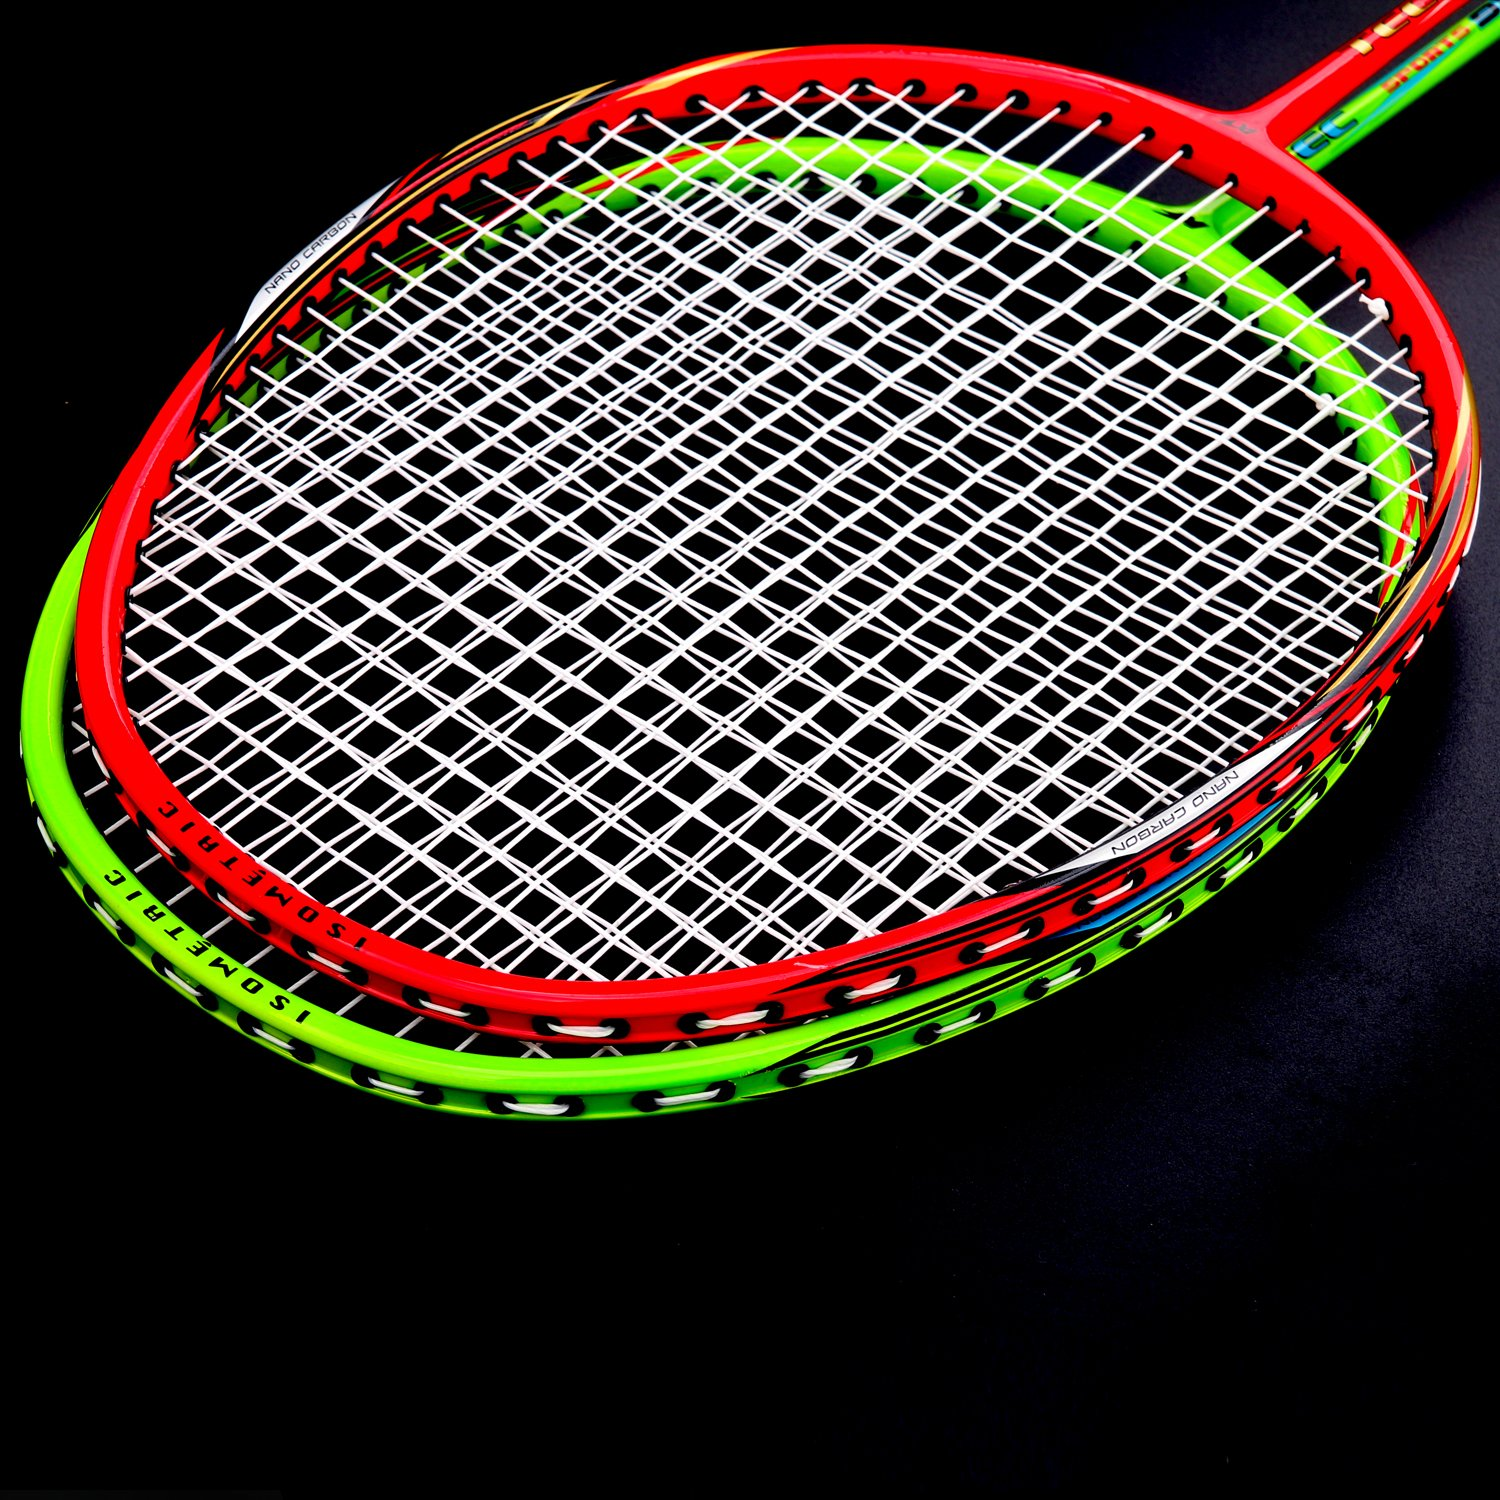 L.E.D STEP Badminton Rackets Light Racket Set from Tournament Professional  2 Carbon Fiber Shaft Racquets Included 7b991d6f8f280